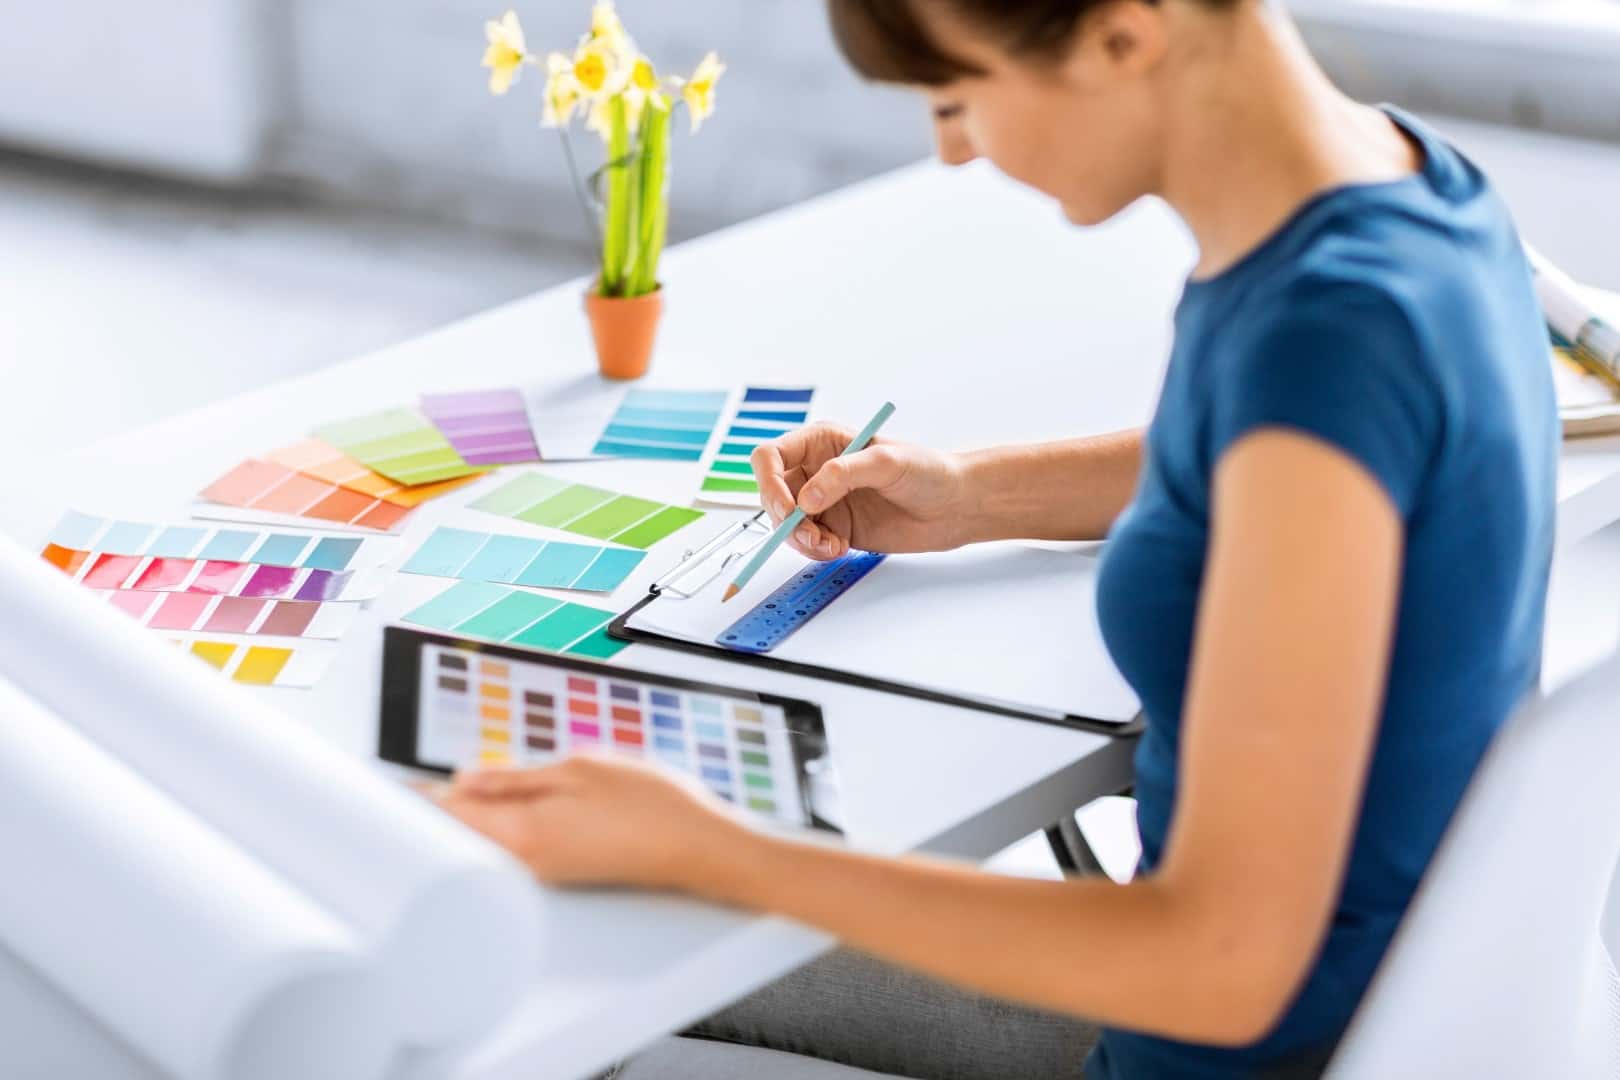 The Top 5 Elements of Effective Graphic Design